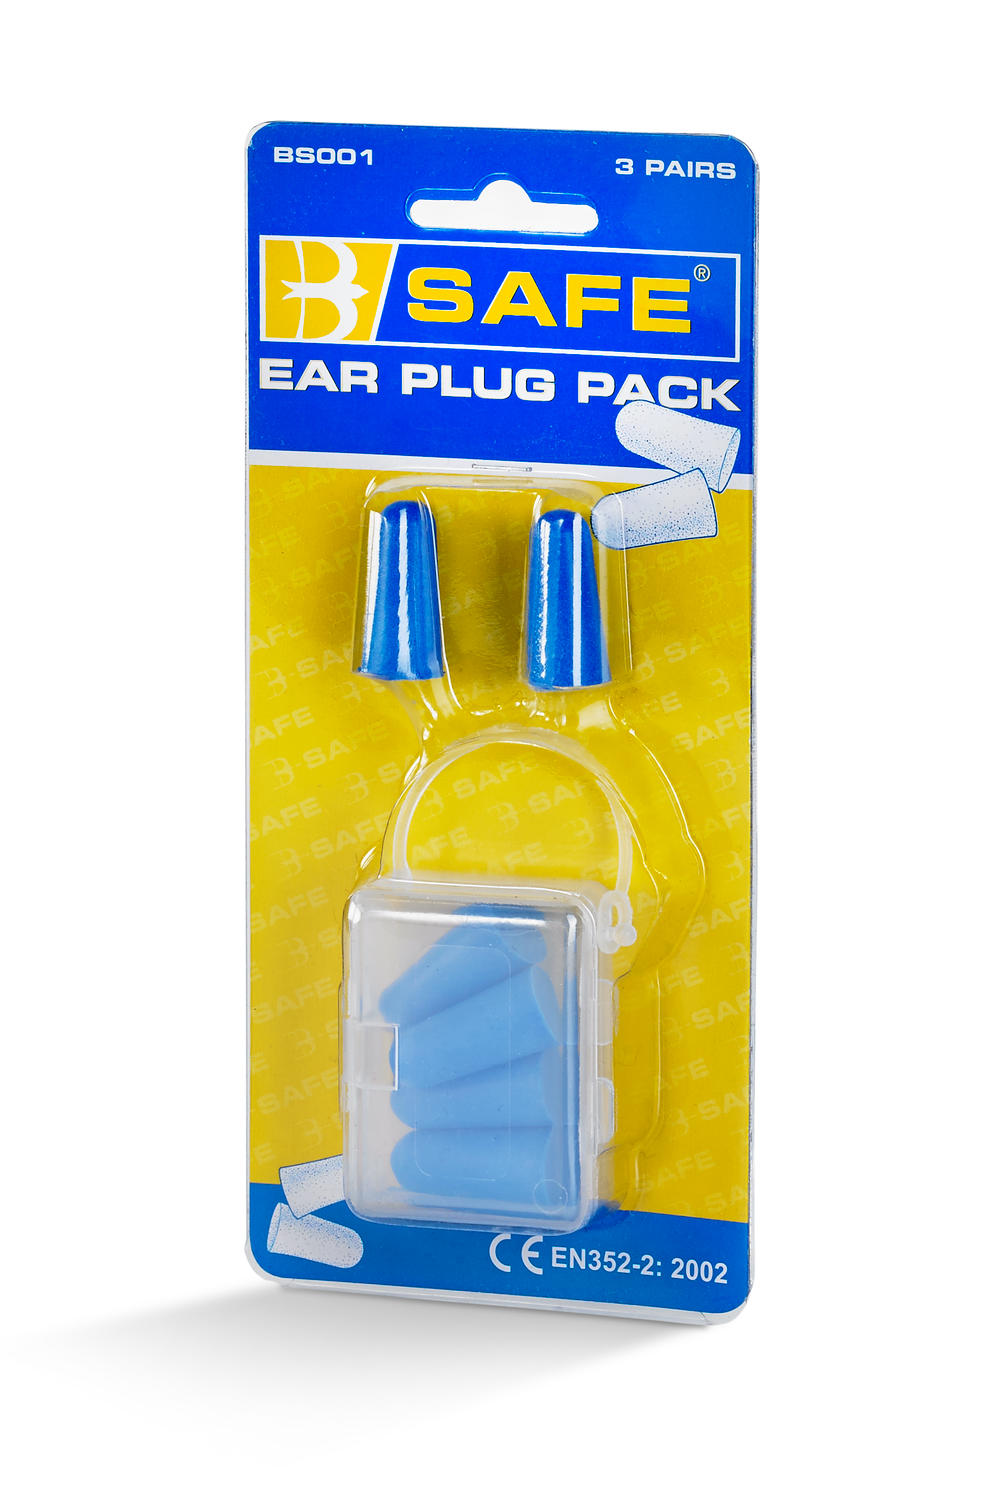 B-SAFE EAR PLUGS 3 PAIR/PACK